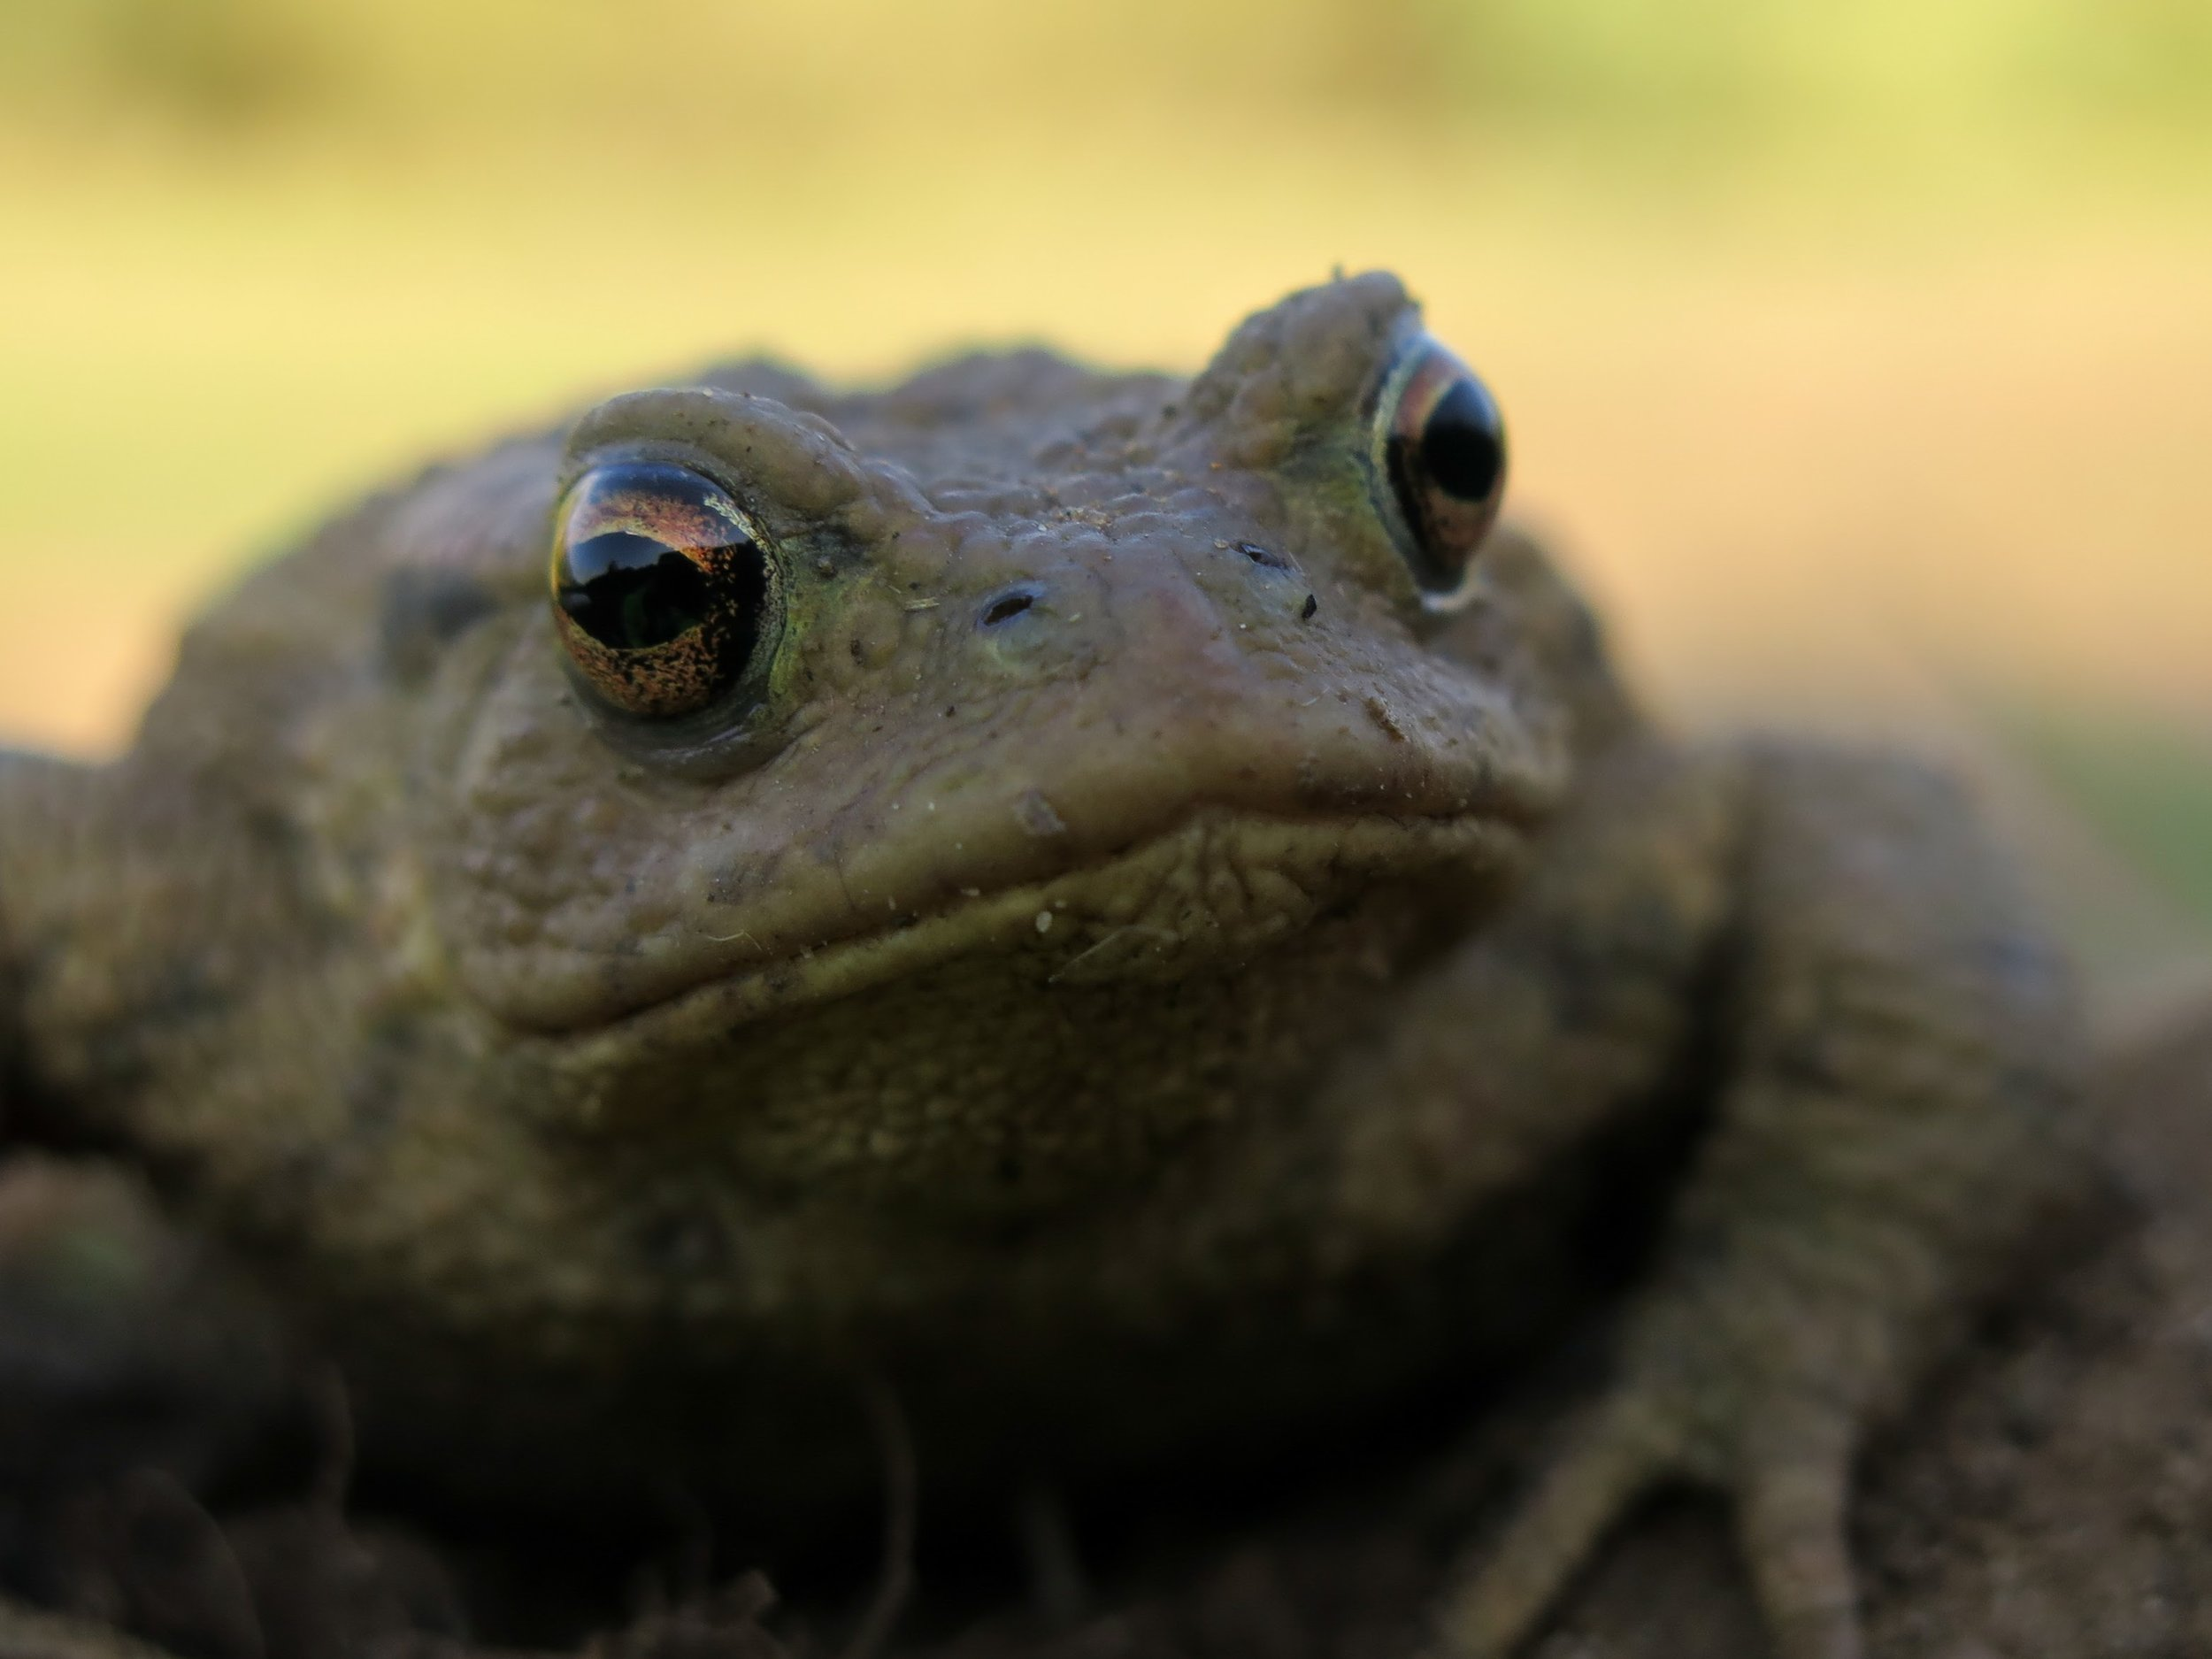 Common toad encountered during amphibian translocation survey